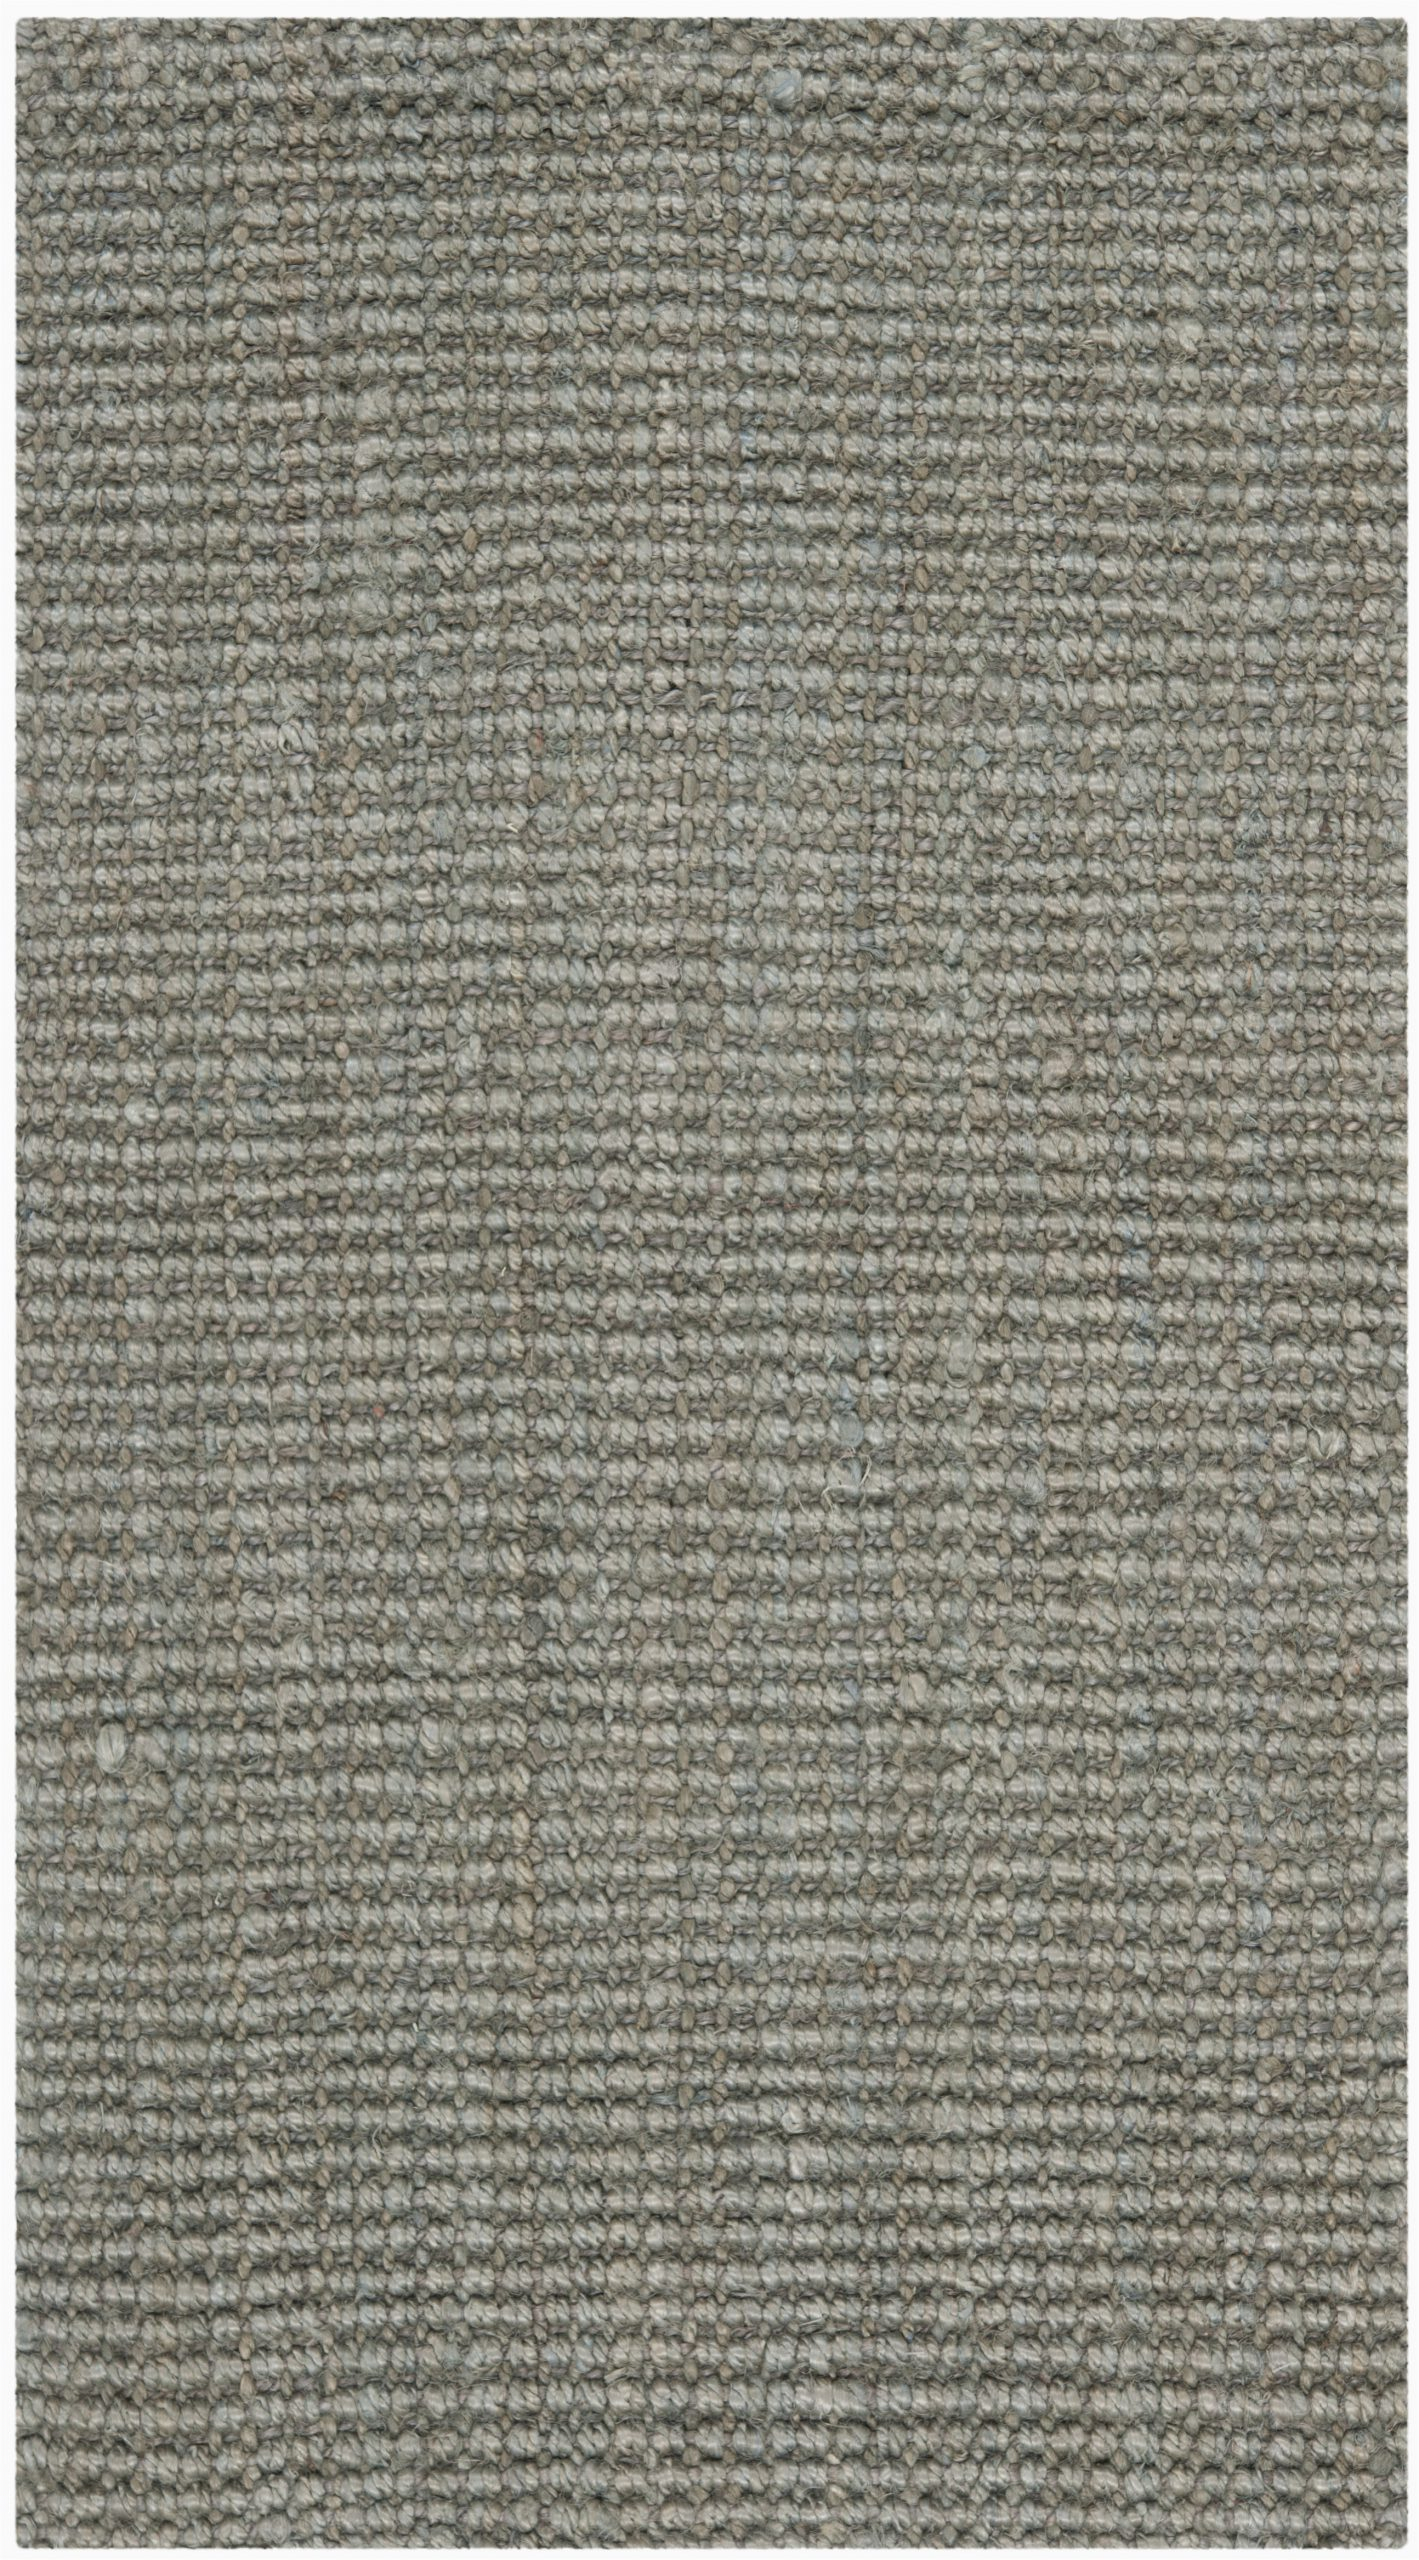 Safavieh Natural Fiber Milica Braided area Rug Safavieh Natural Fiber Milica Braided area Rug Runner Walmart